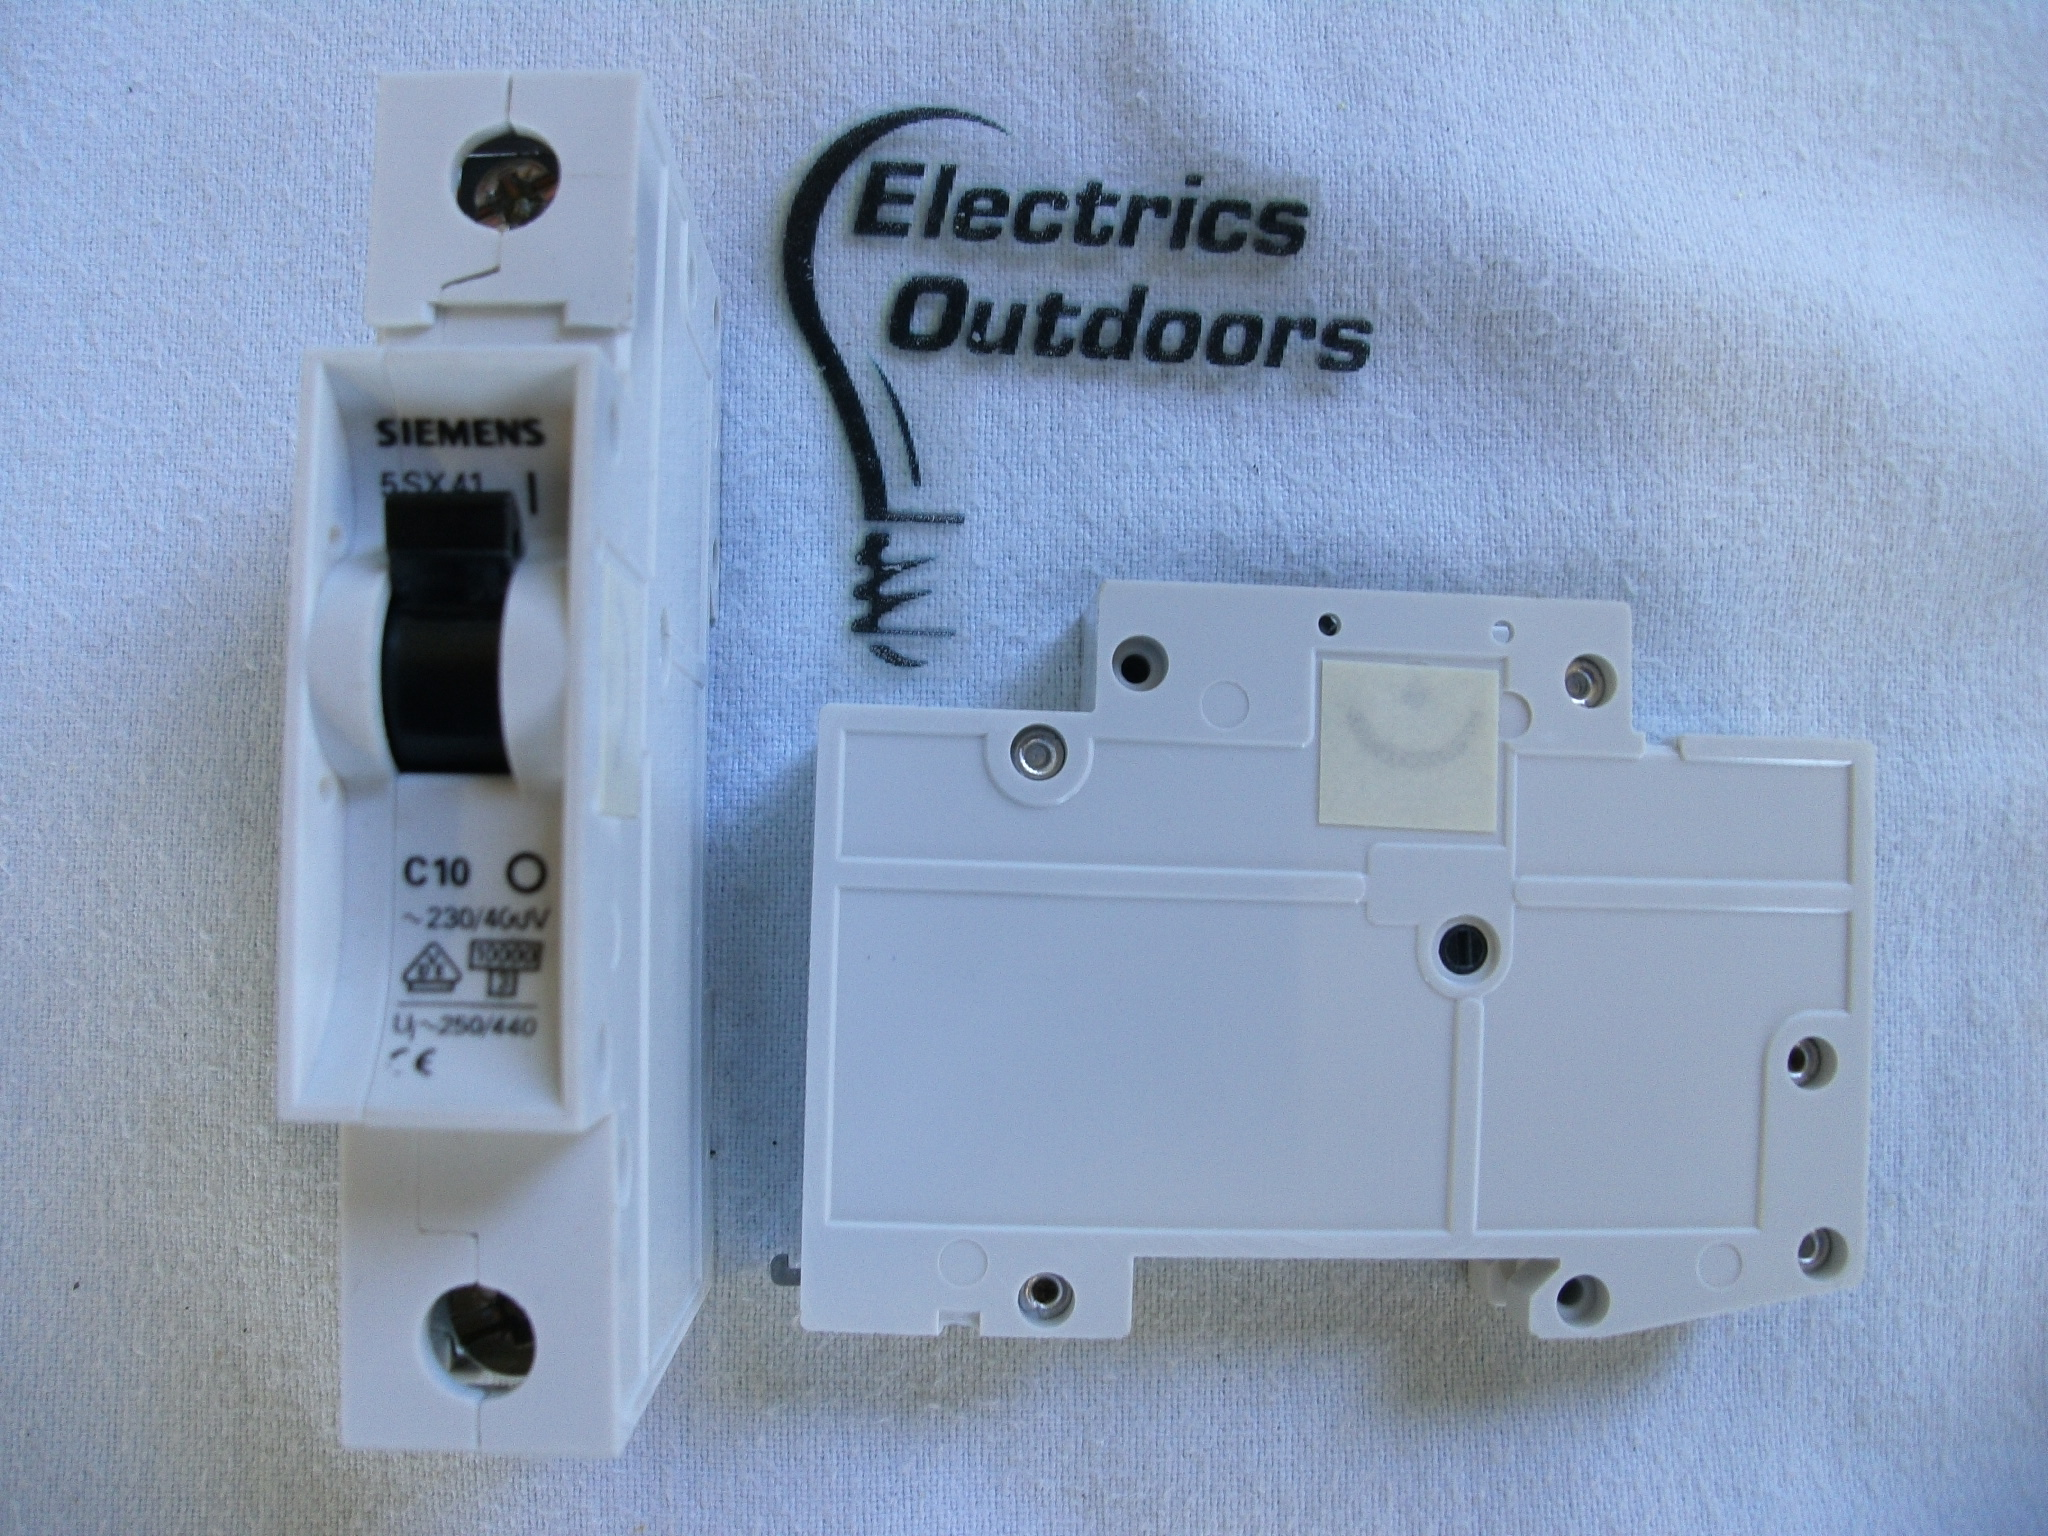 SIEMENS 10 AMP TYPE C 10KA 240V SINGLE POLE MCB CIRCUIT BREAKER 5SX41 BSEN 60898